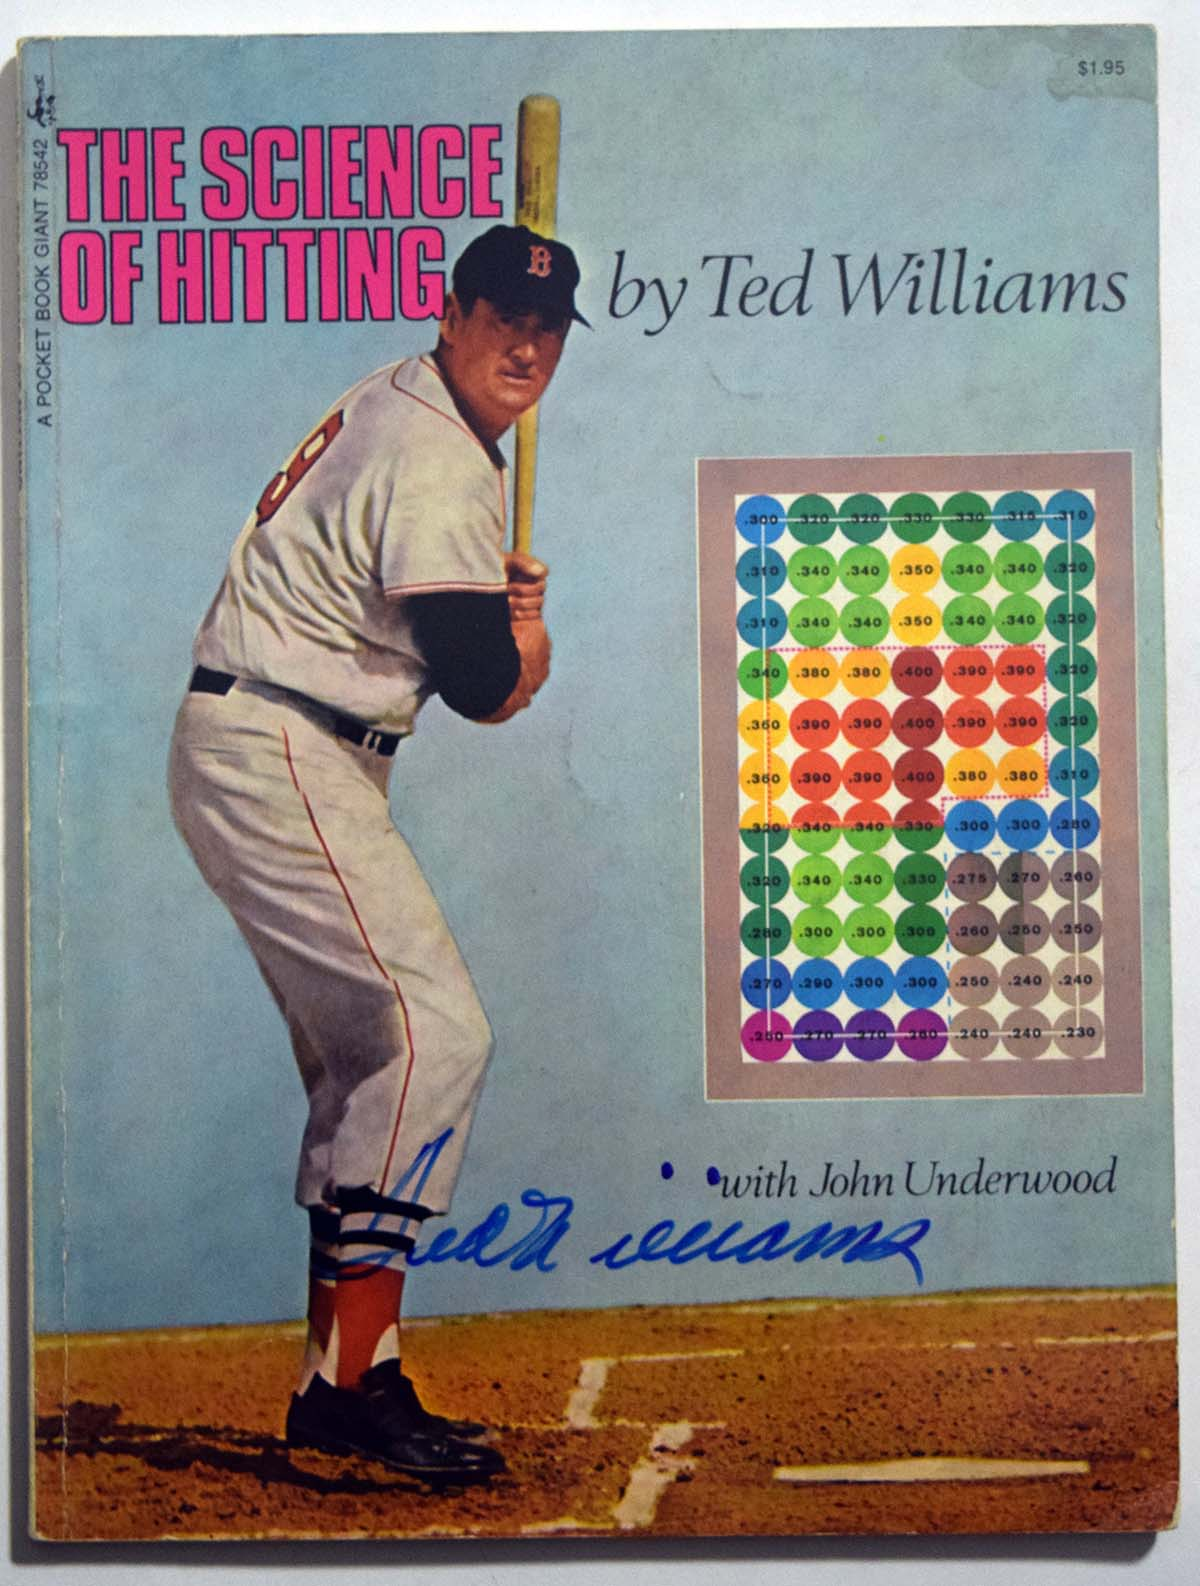 Lot #774  Program  Williams, Ted Signed The Science of Hitting Cond: 9.5